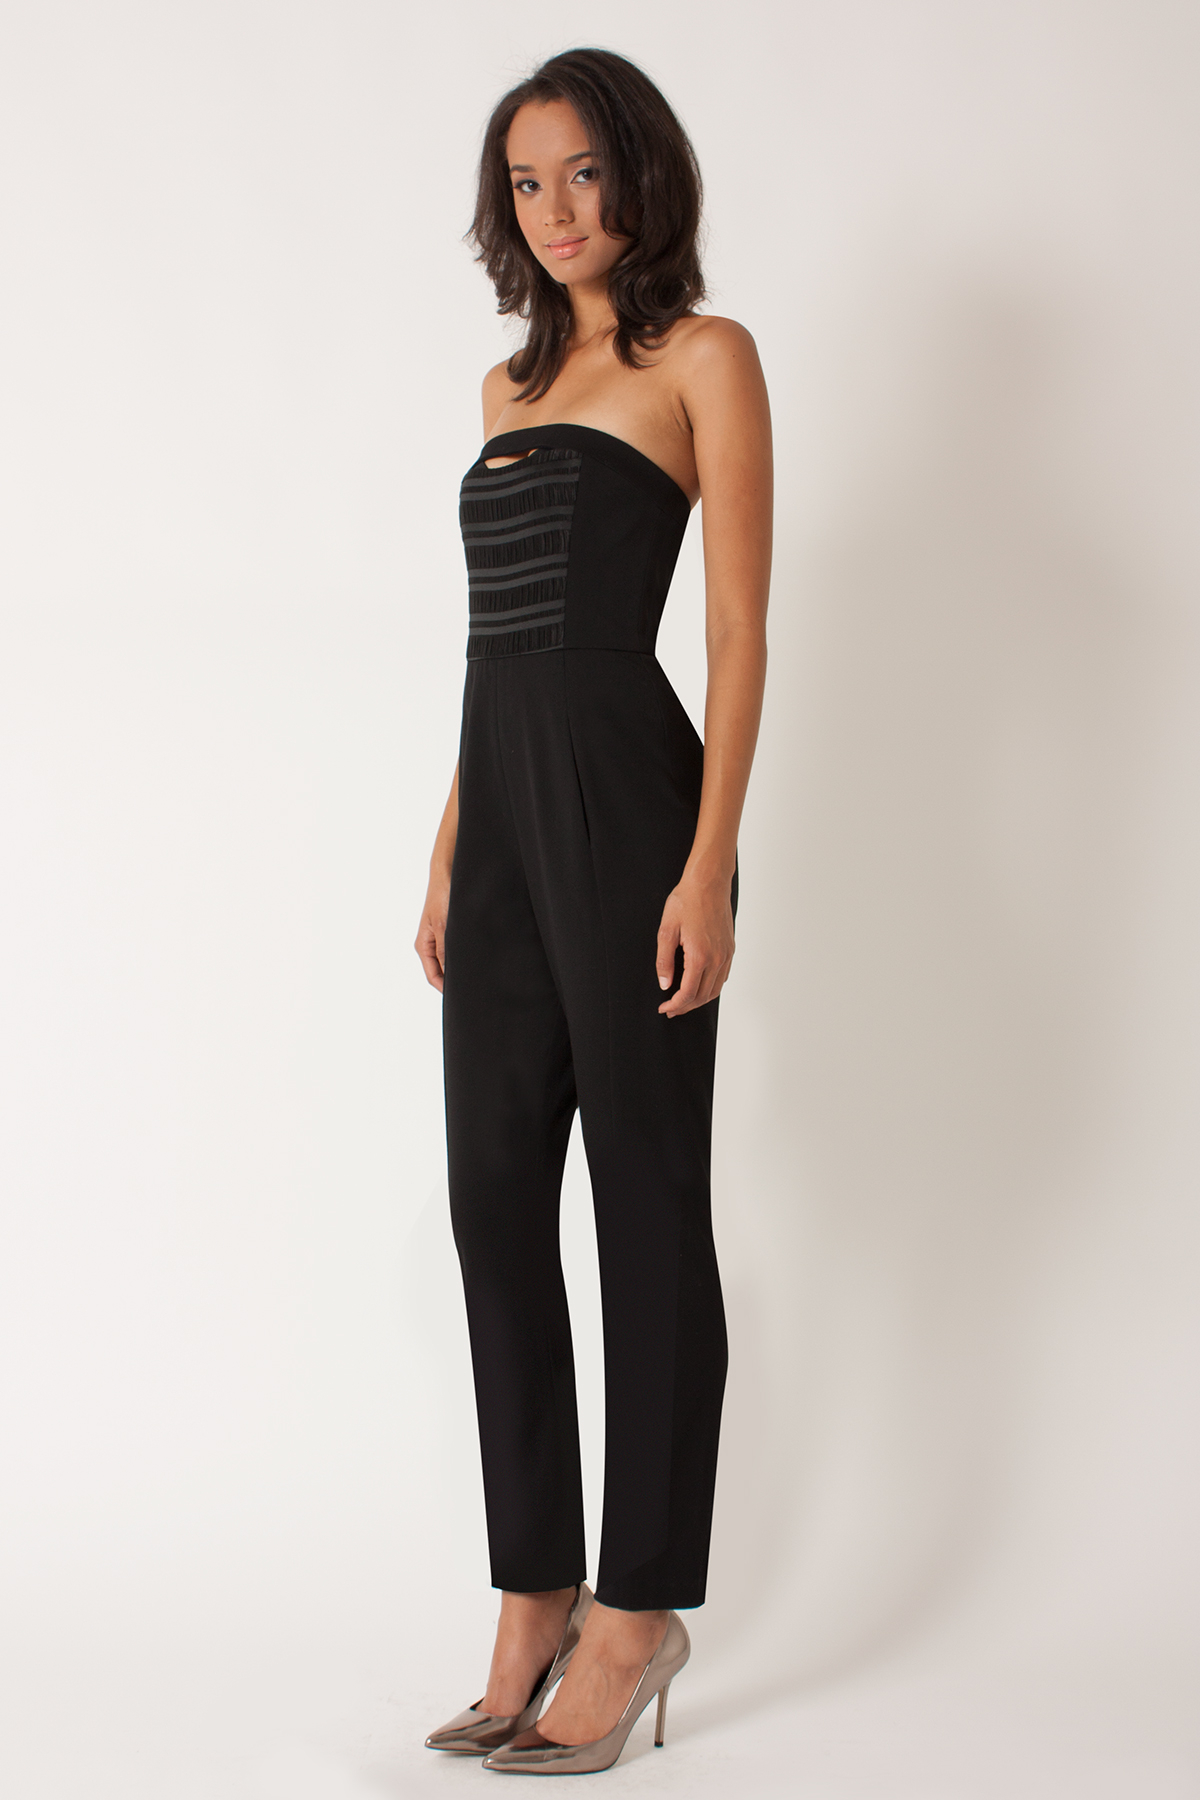 Lyst - Black Halo Leyton Strapless Jumpsuit in Black